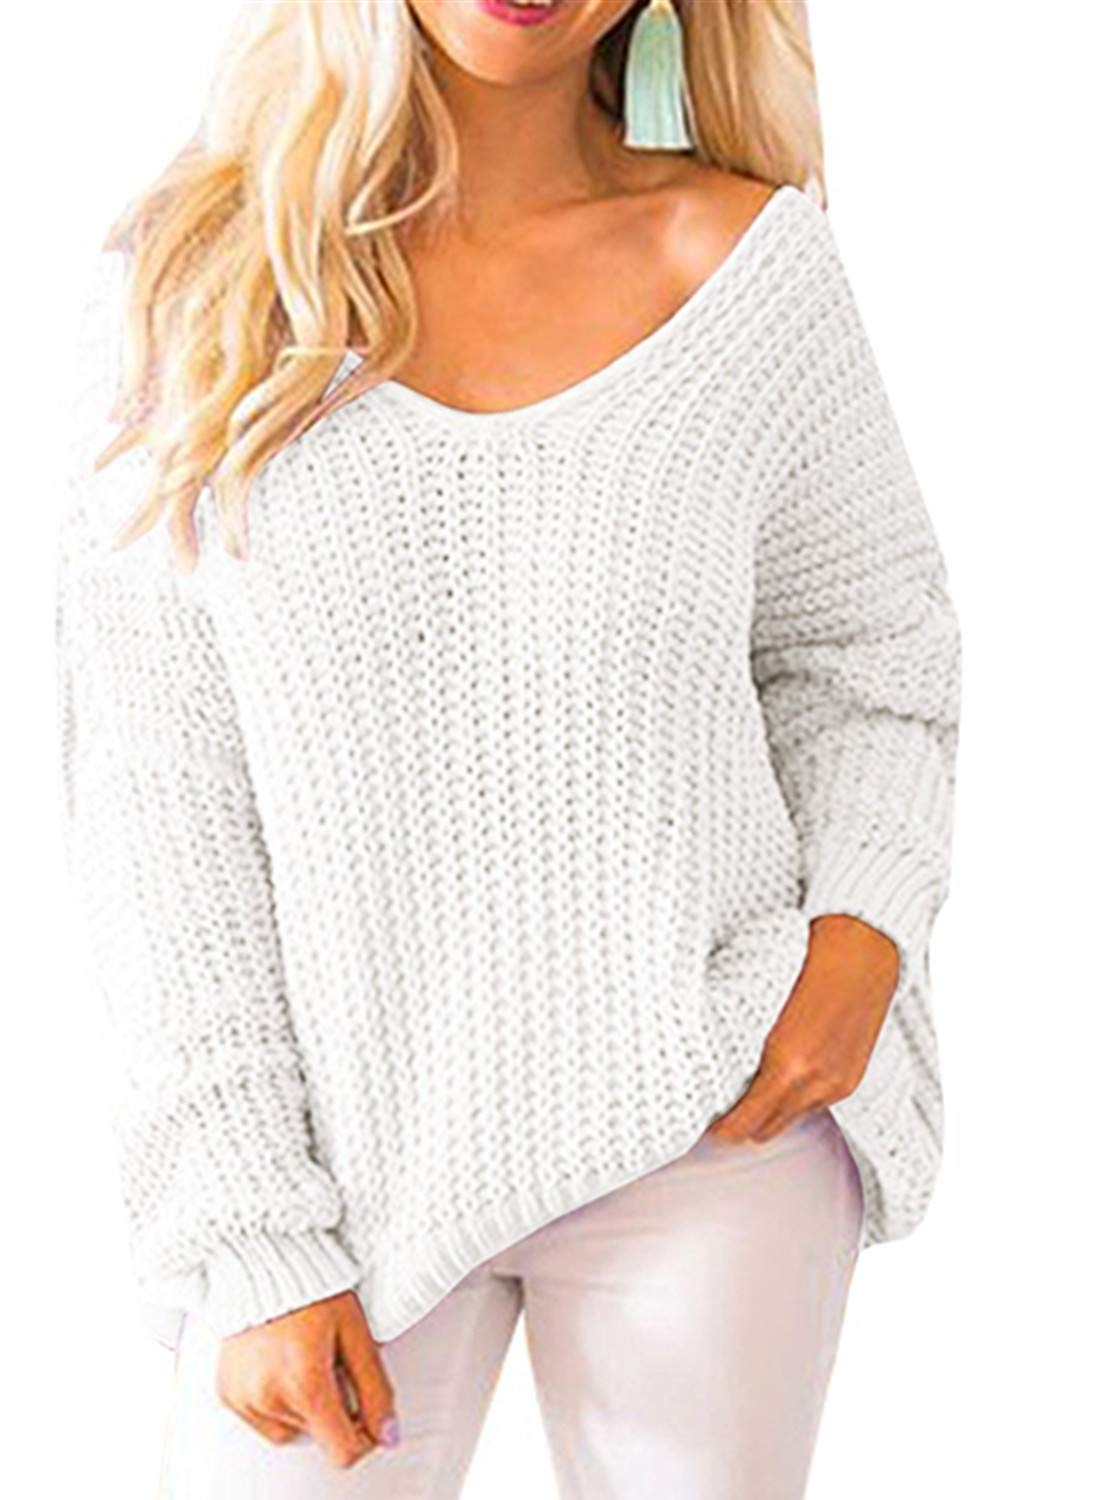 Huiyuzhi Women's Oversized Pullover Sweaters Off Shoulder V Neck Batwing Sleeve Loose Knit Chunky Sweatshirt Jumper Tops (M, White)